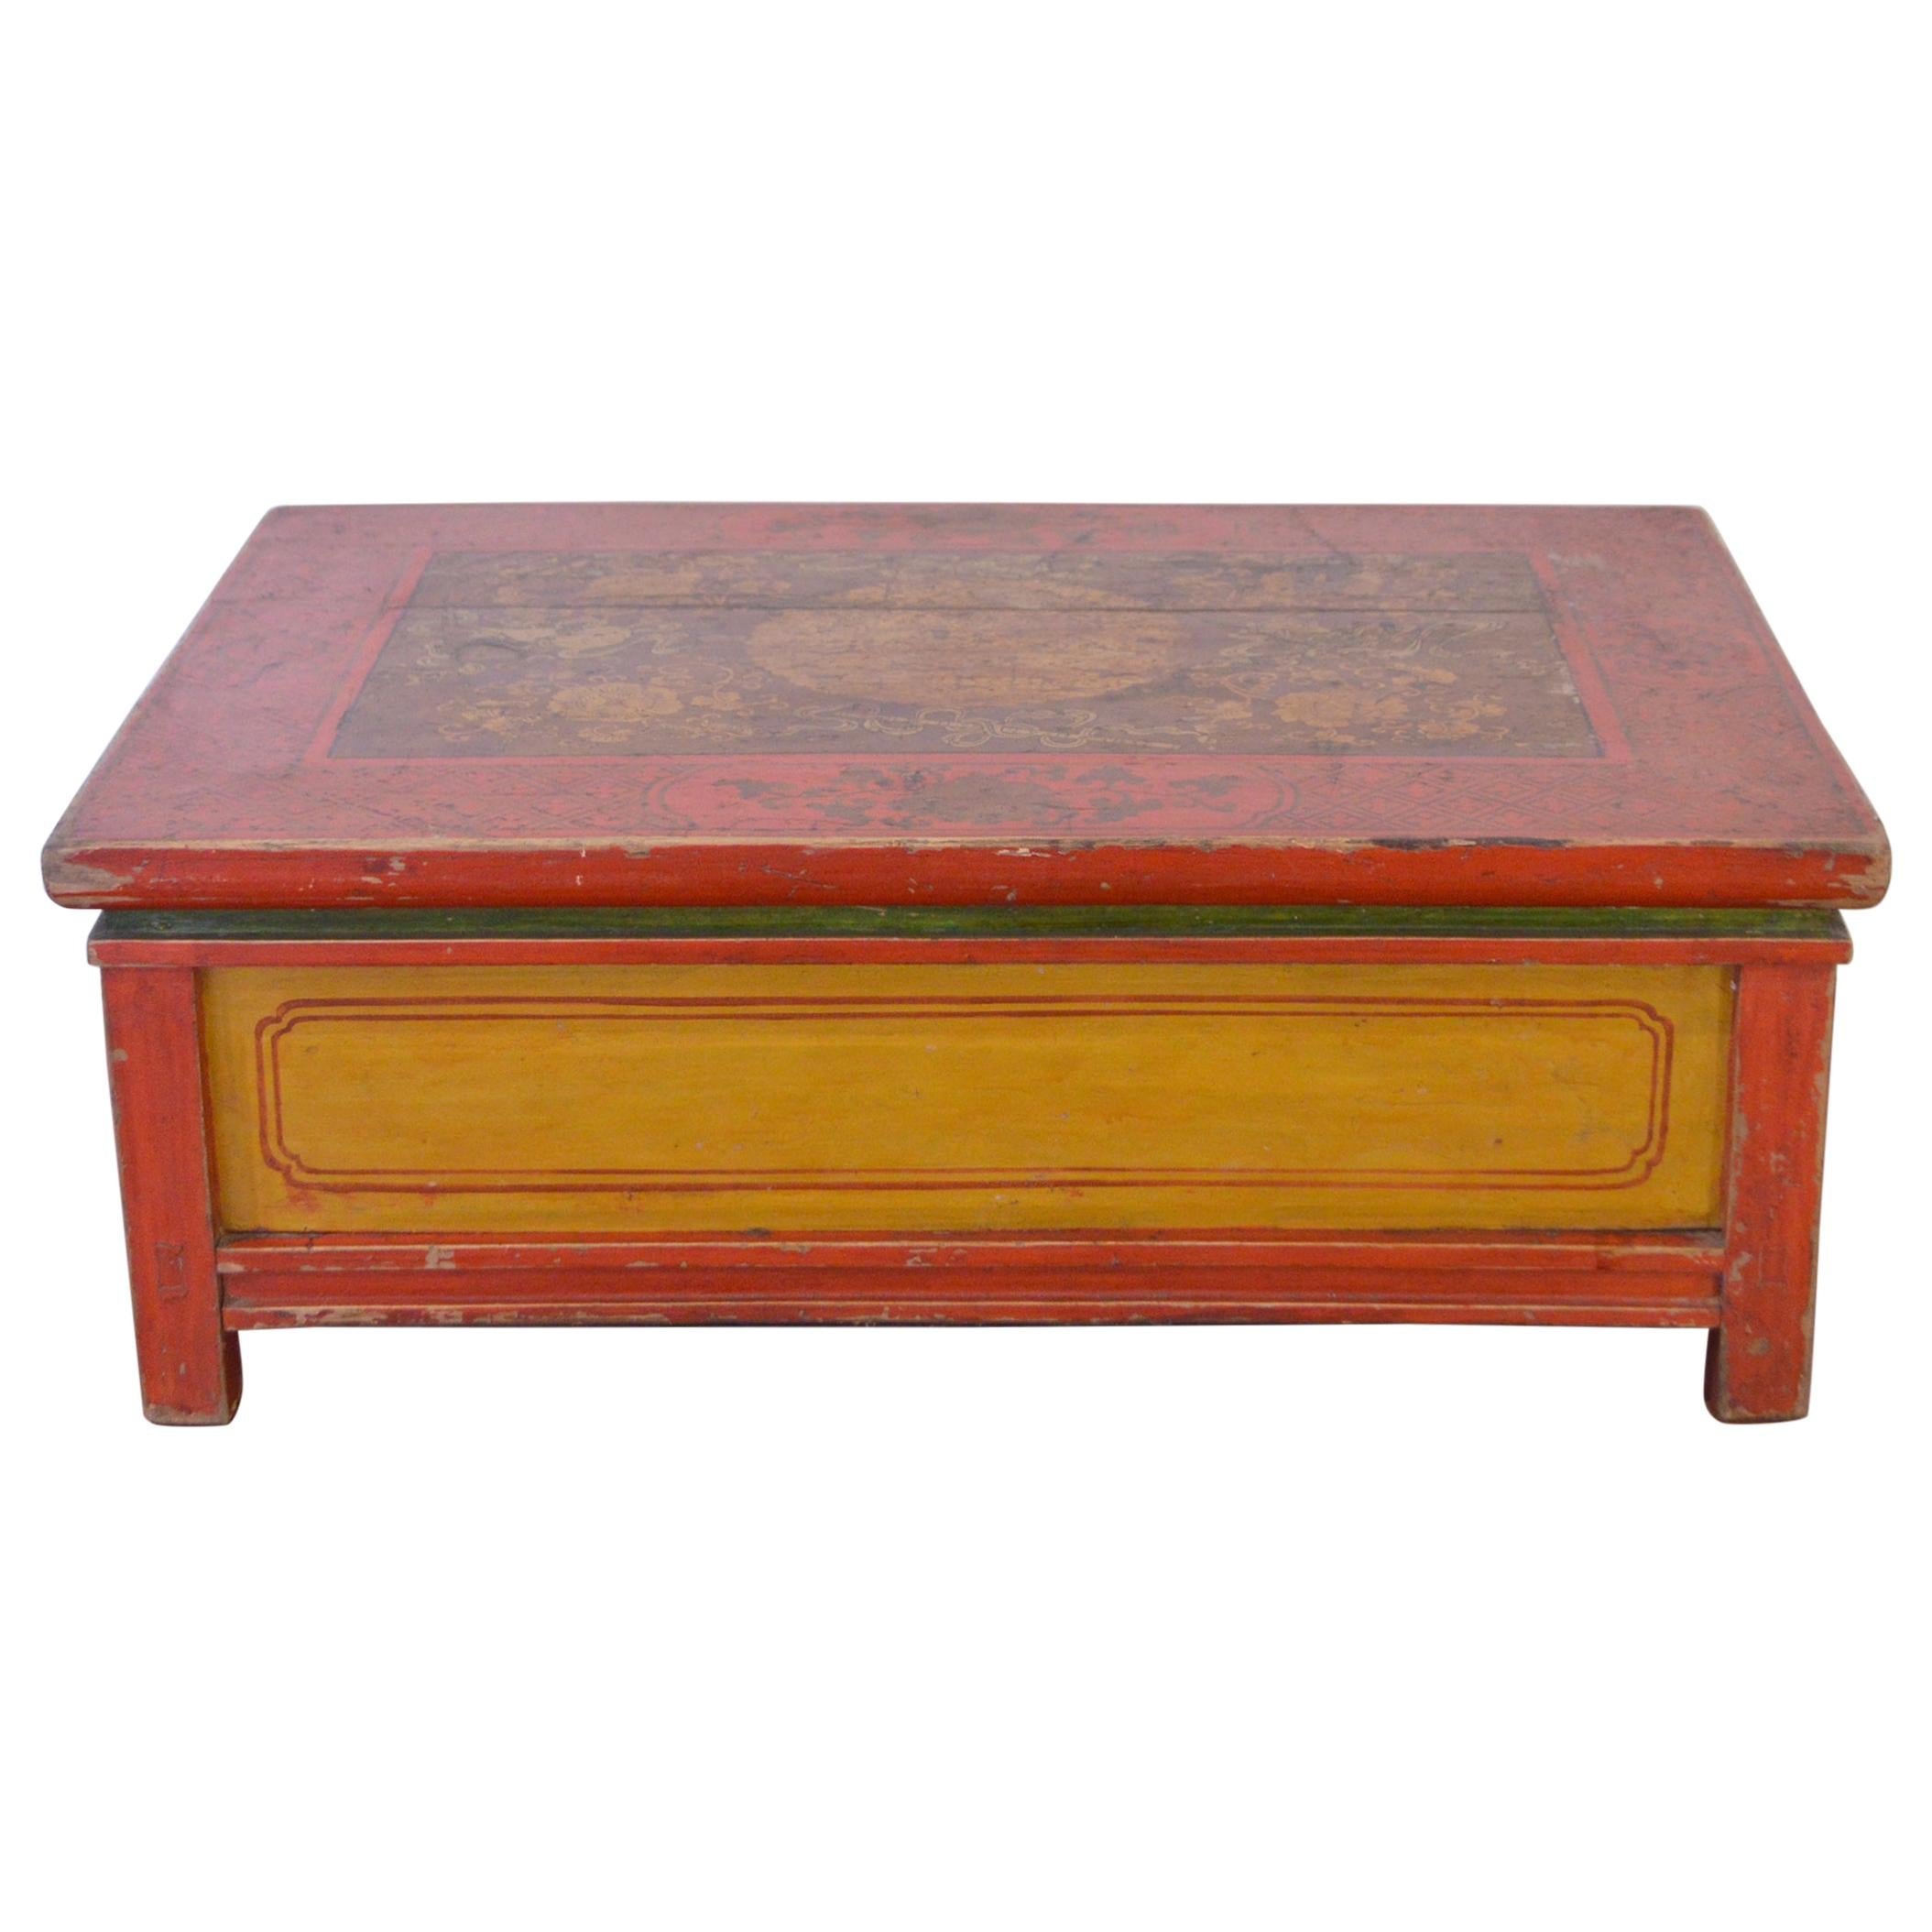 Mid-19th Century Pine Tibetan Coffee Table Hand-Painted